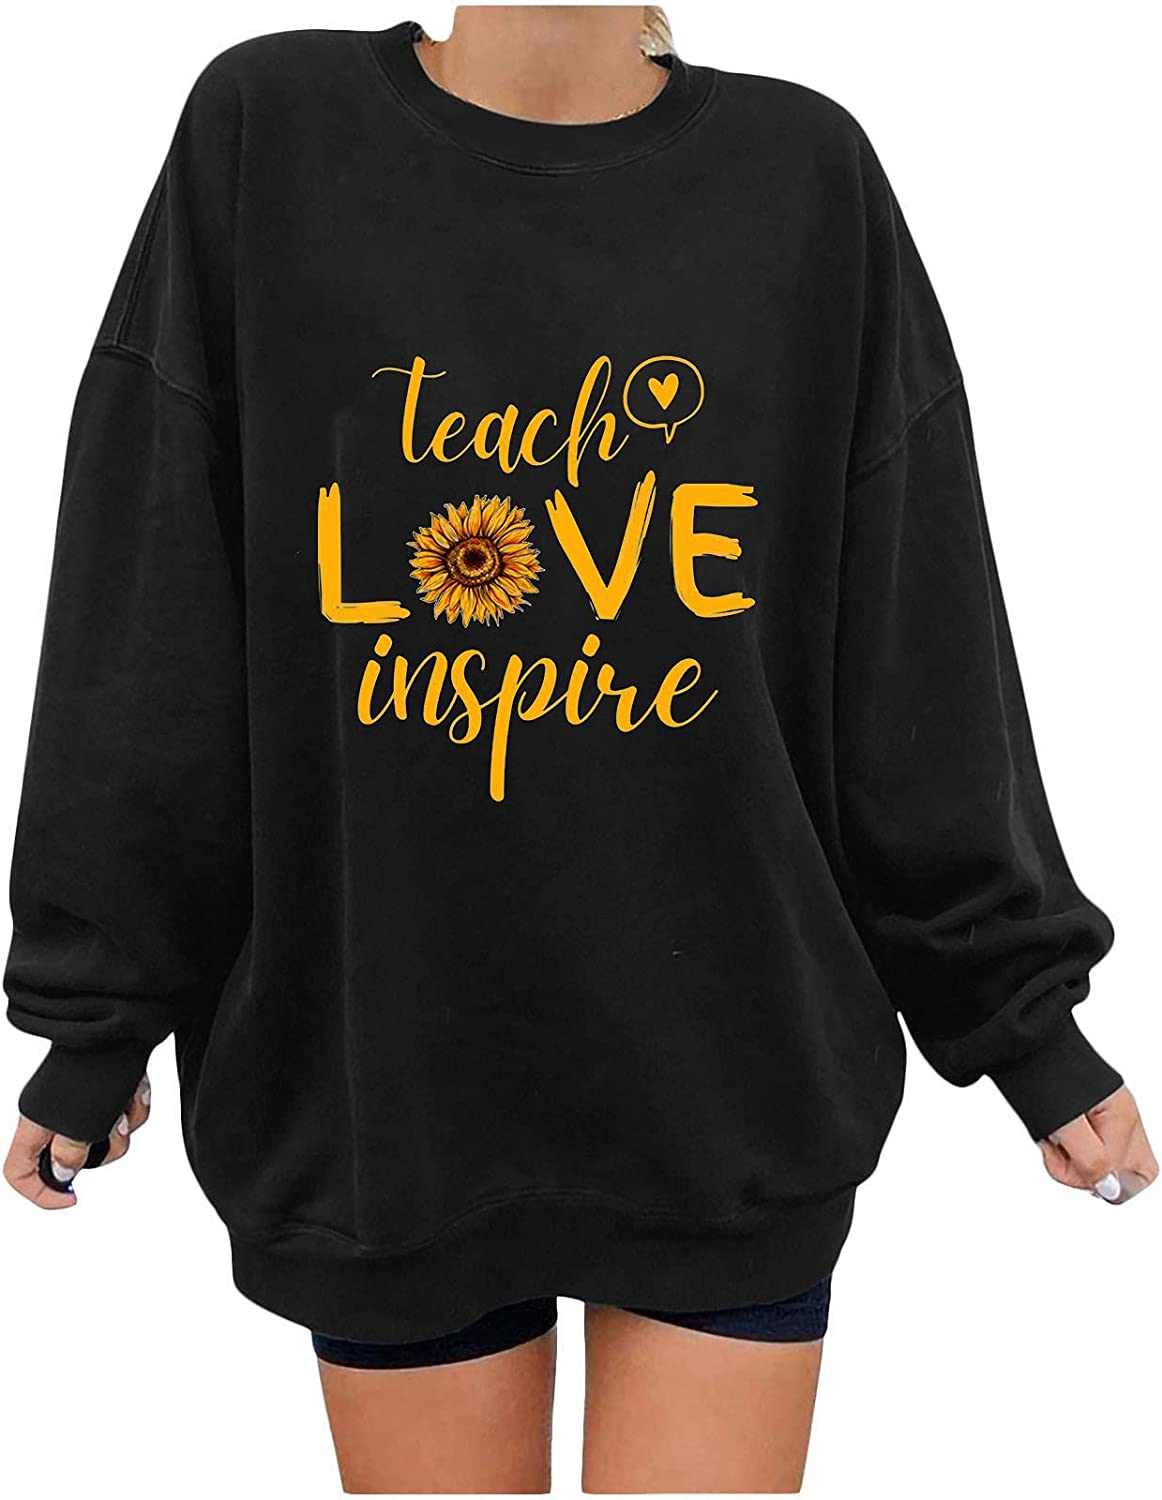 Women's Oversized Pullover Teach Love Inspire Sweatshirts Loose Fit Casual Crewneck Tops Fall Clothes Teacher Gifts